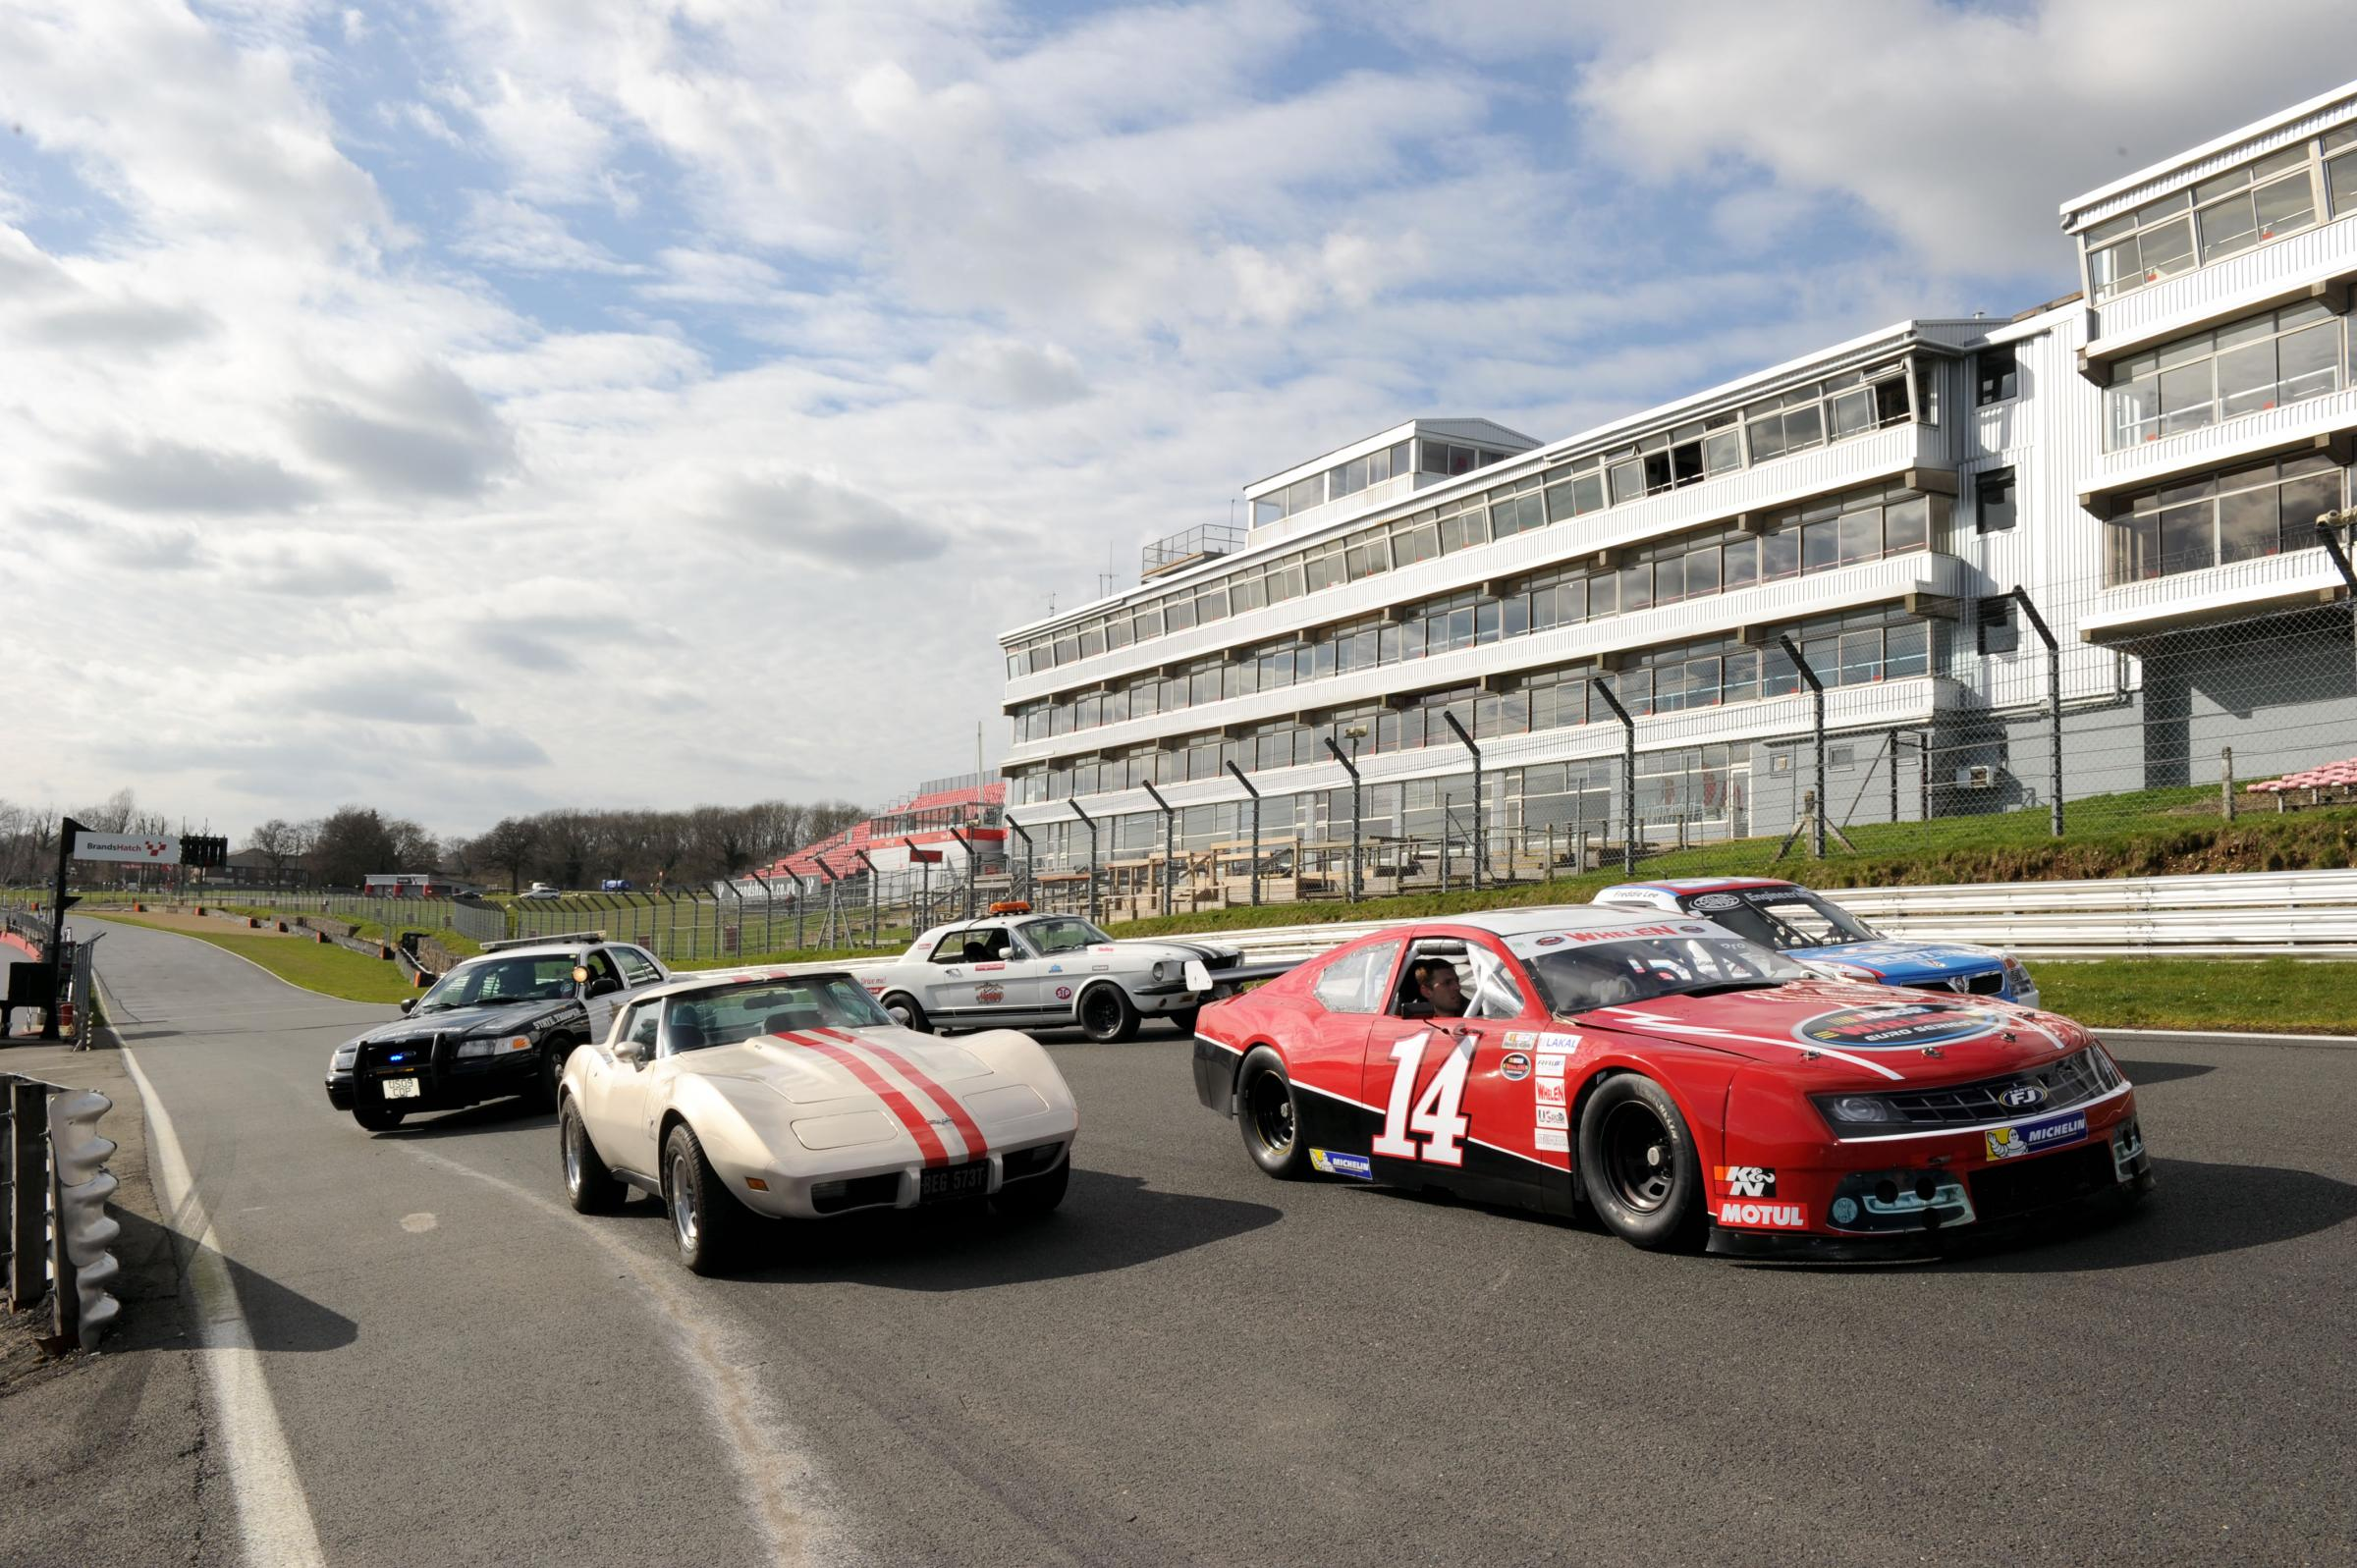 News Shopper: Cars from the NASCAR Euroseries line-up on the grid. Event is on June 8th.